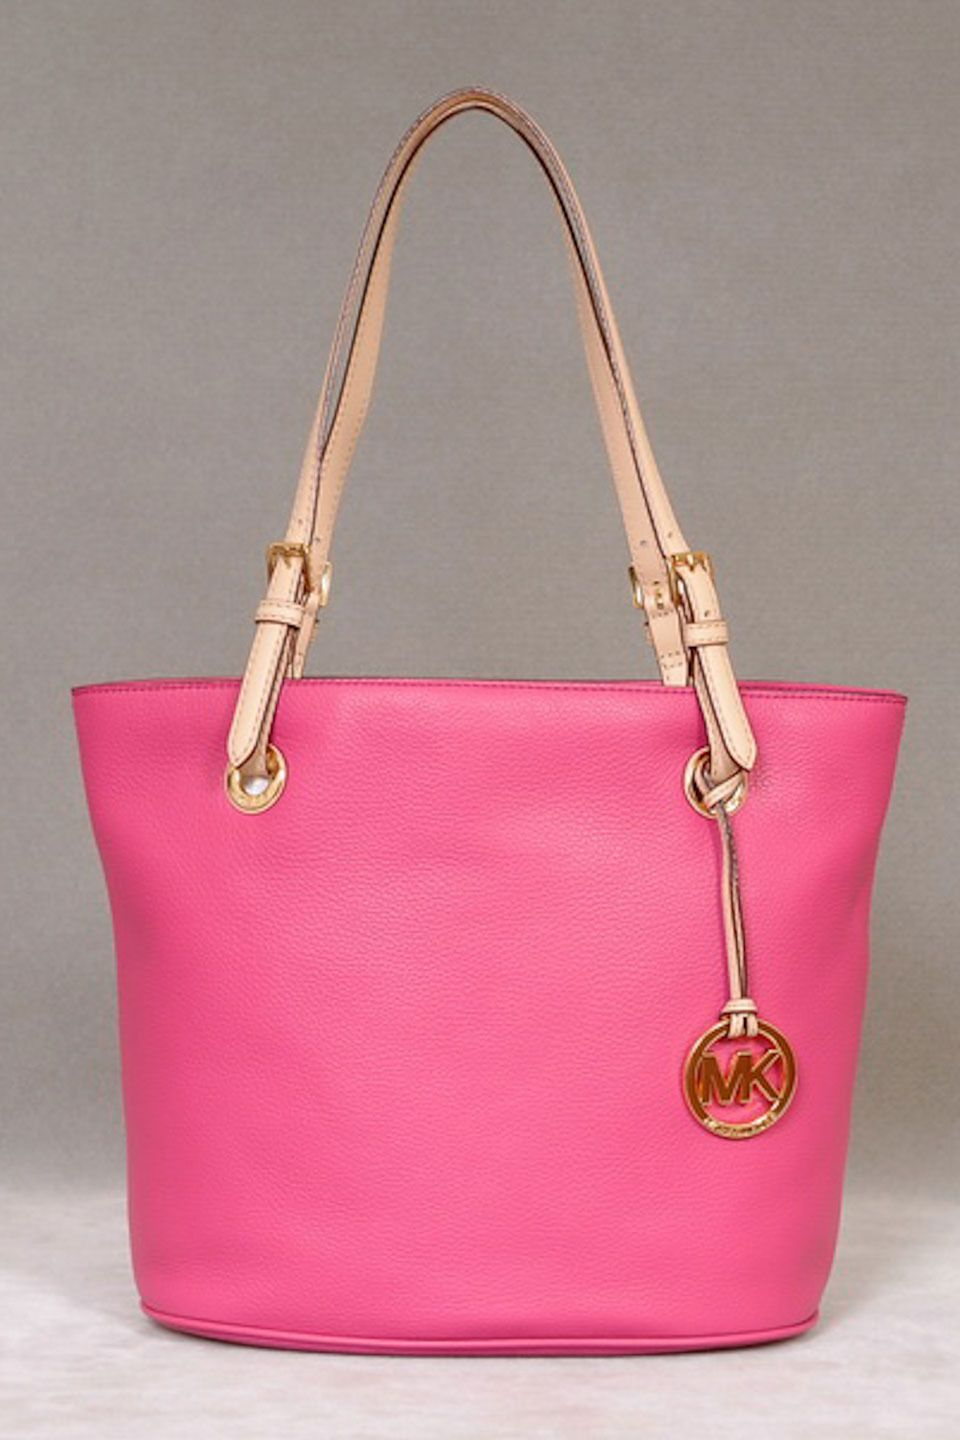 Michael Kors Leather Tote in Hot Pink.  4432bd0c1f6b9